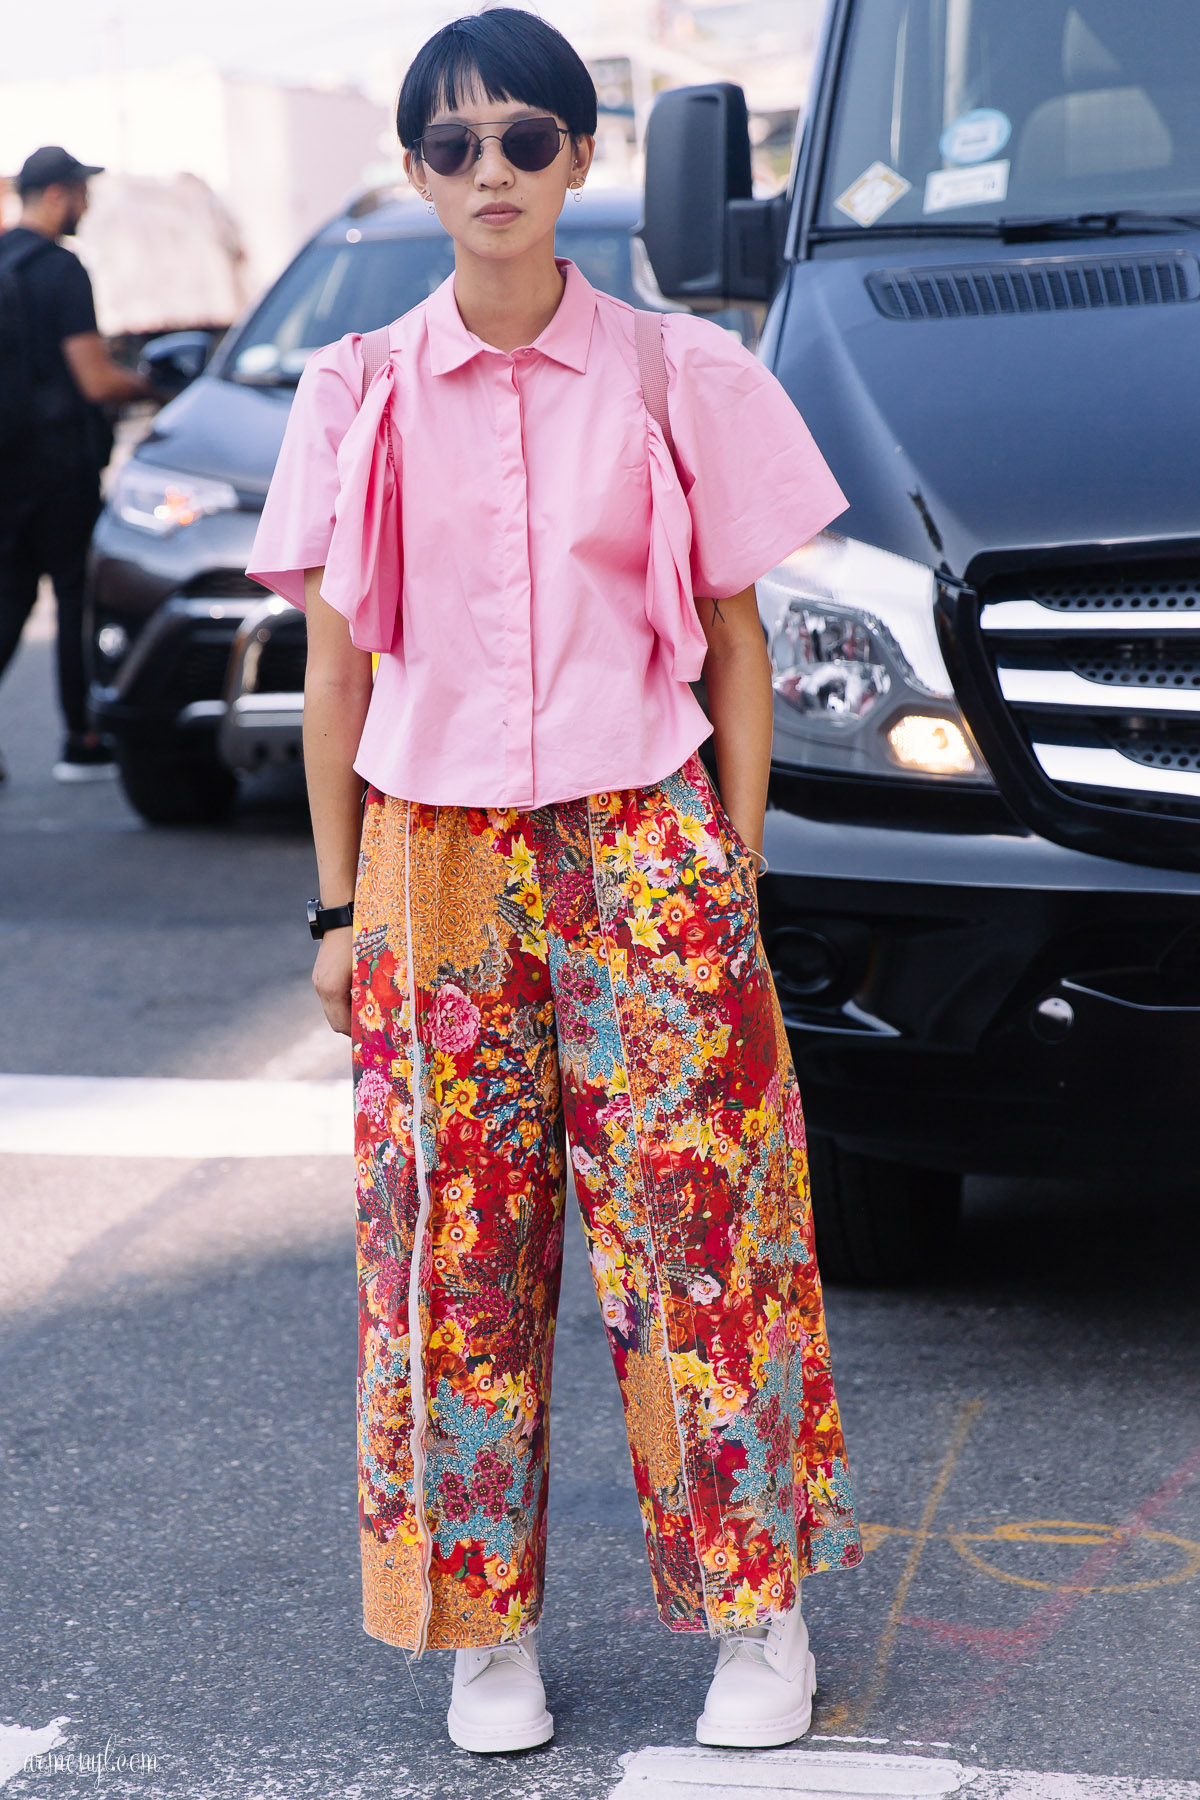 Image result for fashion week 2018 streetstyle